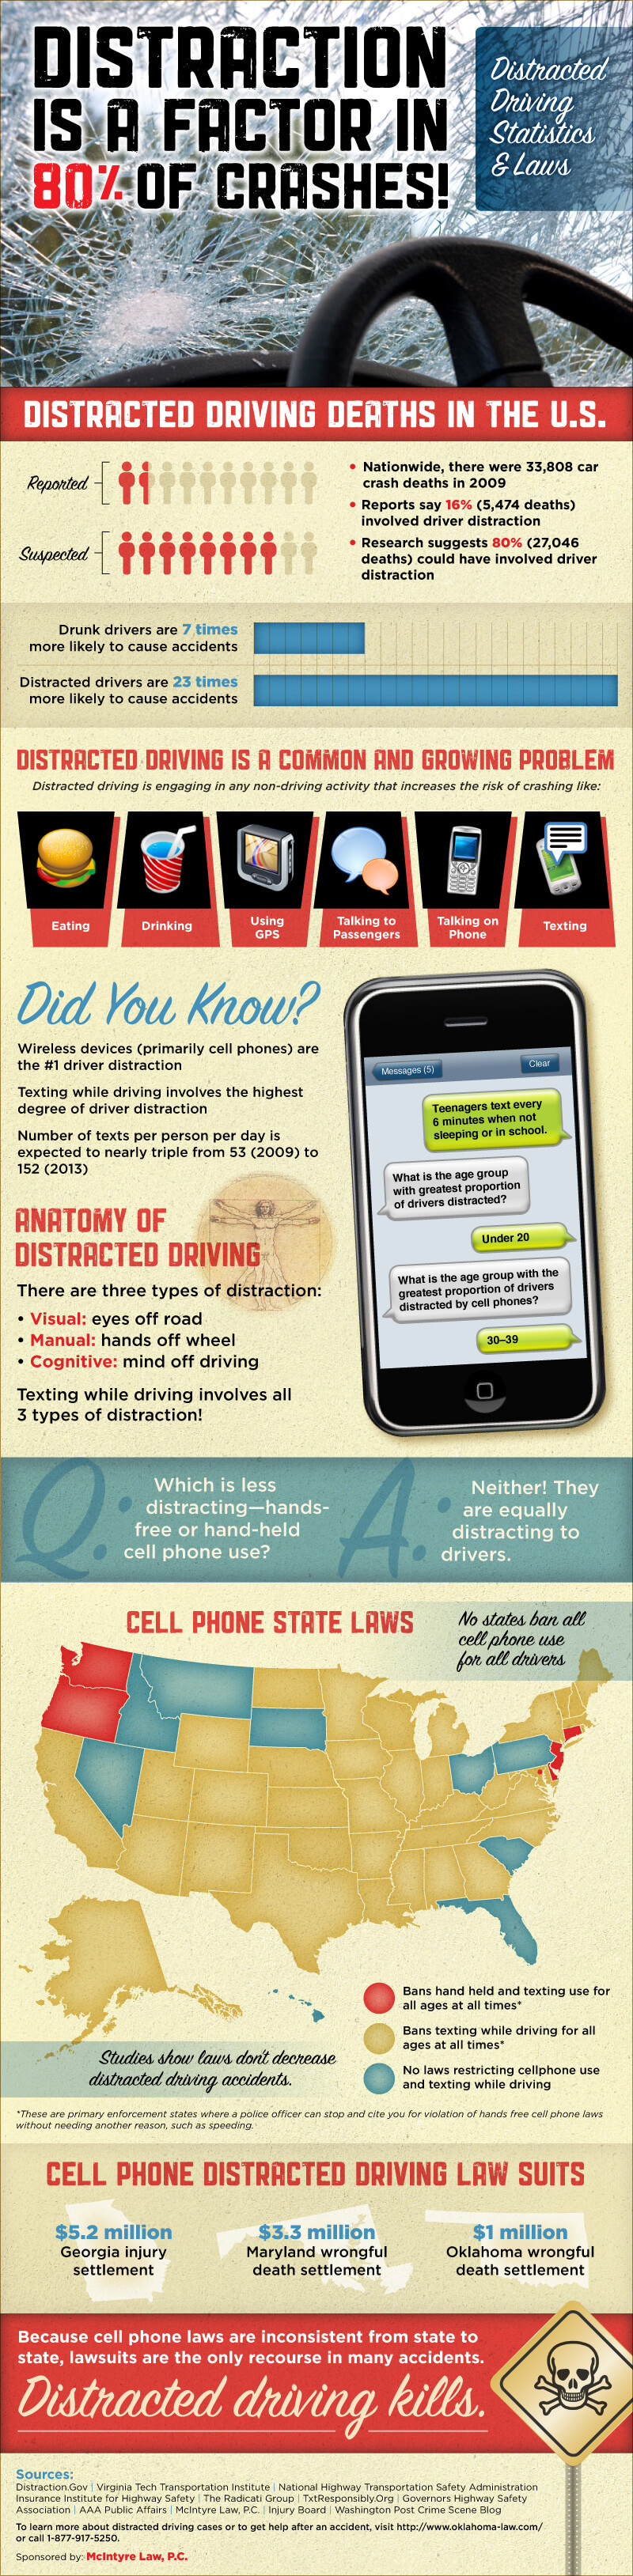 Distracted Driving Statistics and Laws Infographic